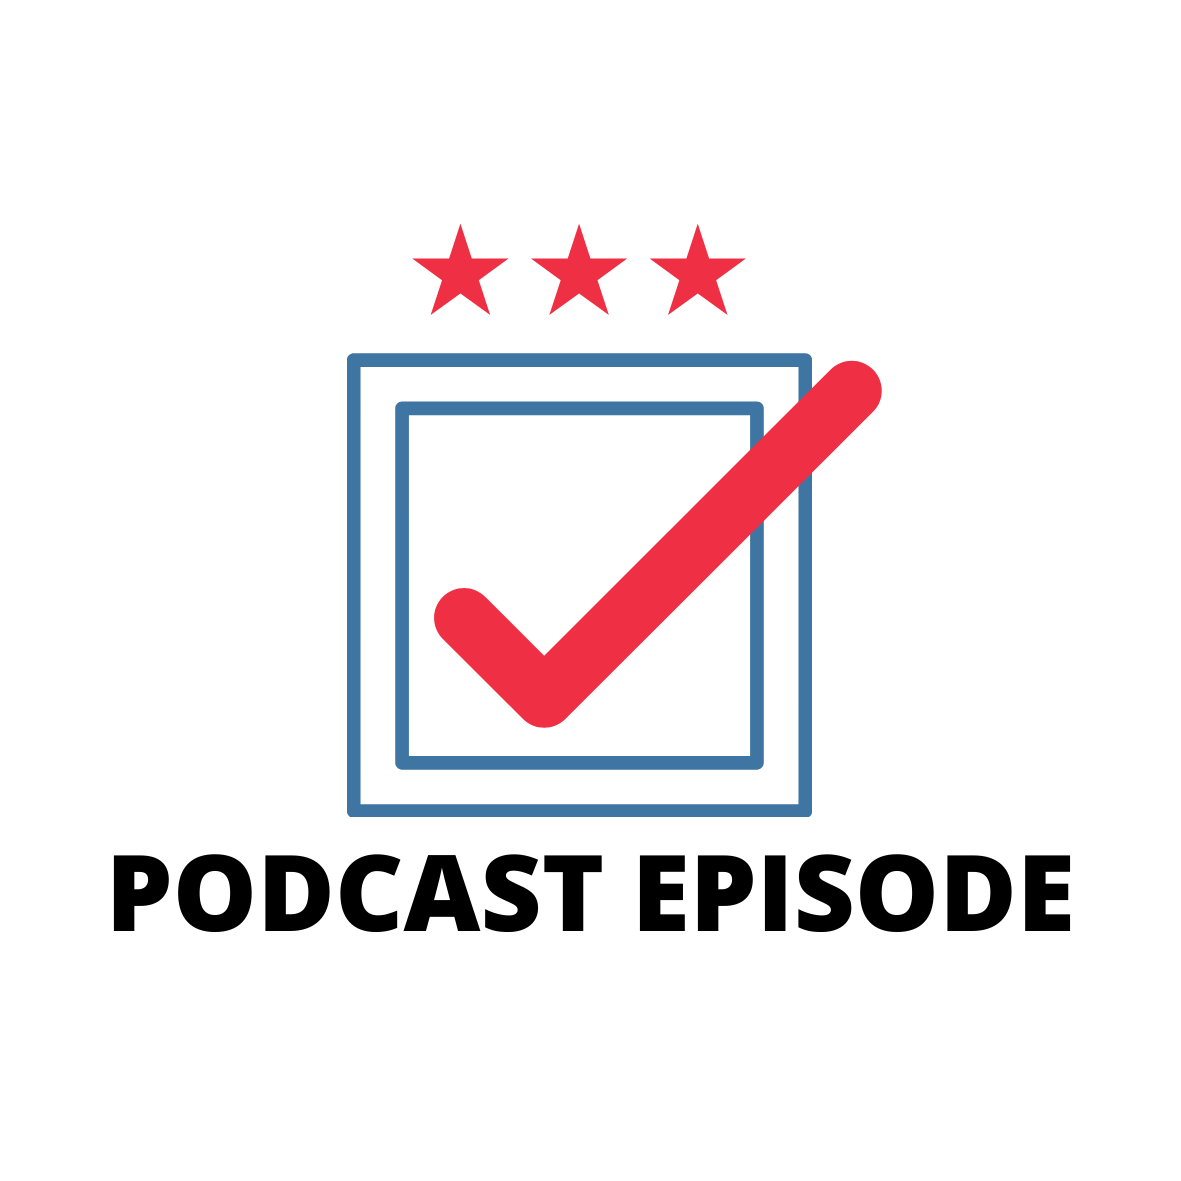 Podcast Episode 11: Election Audits vs. Recounts, Georgia Runoff Repercussions, and Powell/Wood Media Frenzy